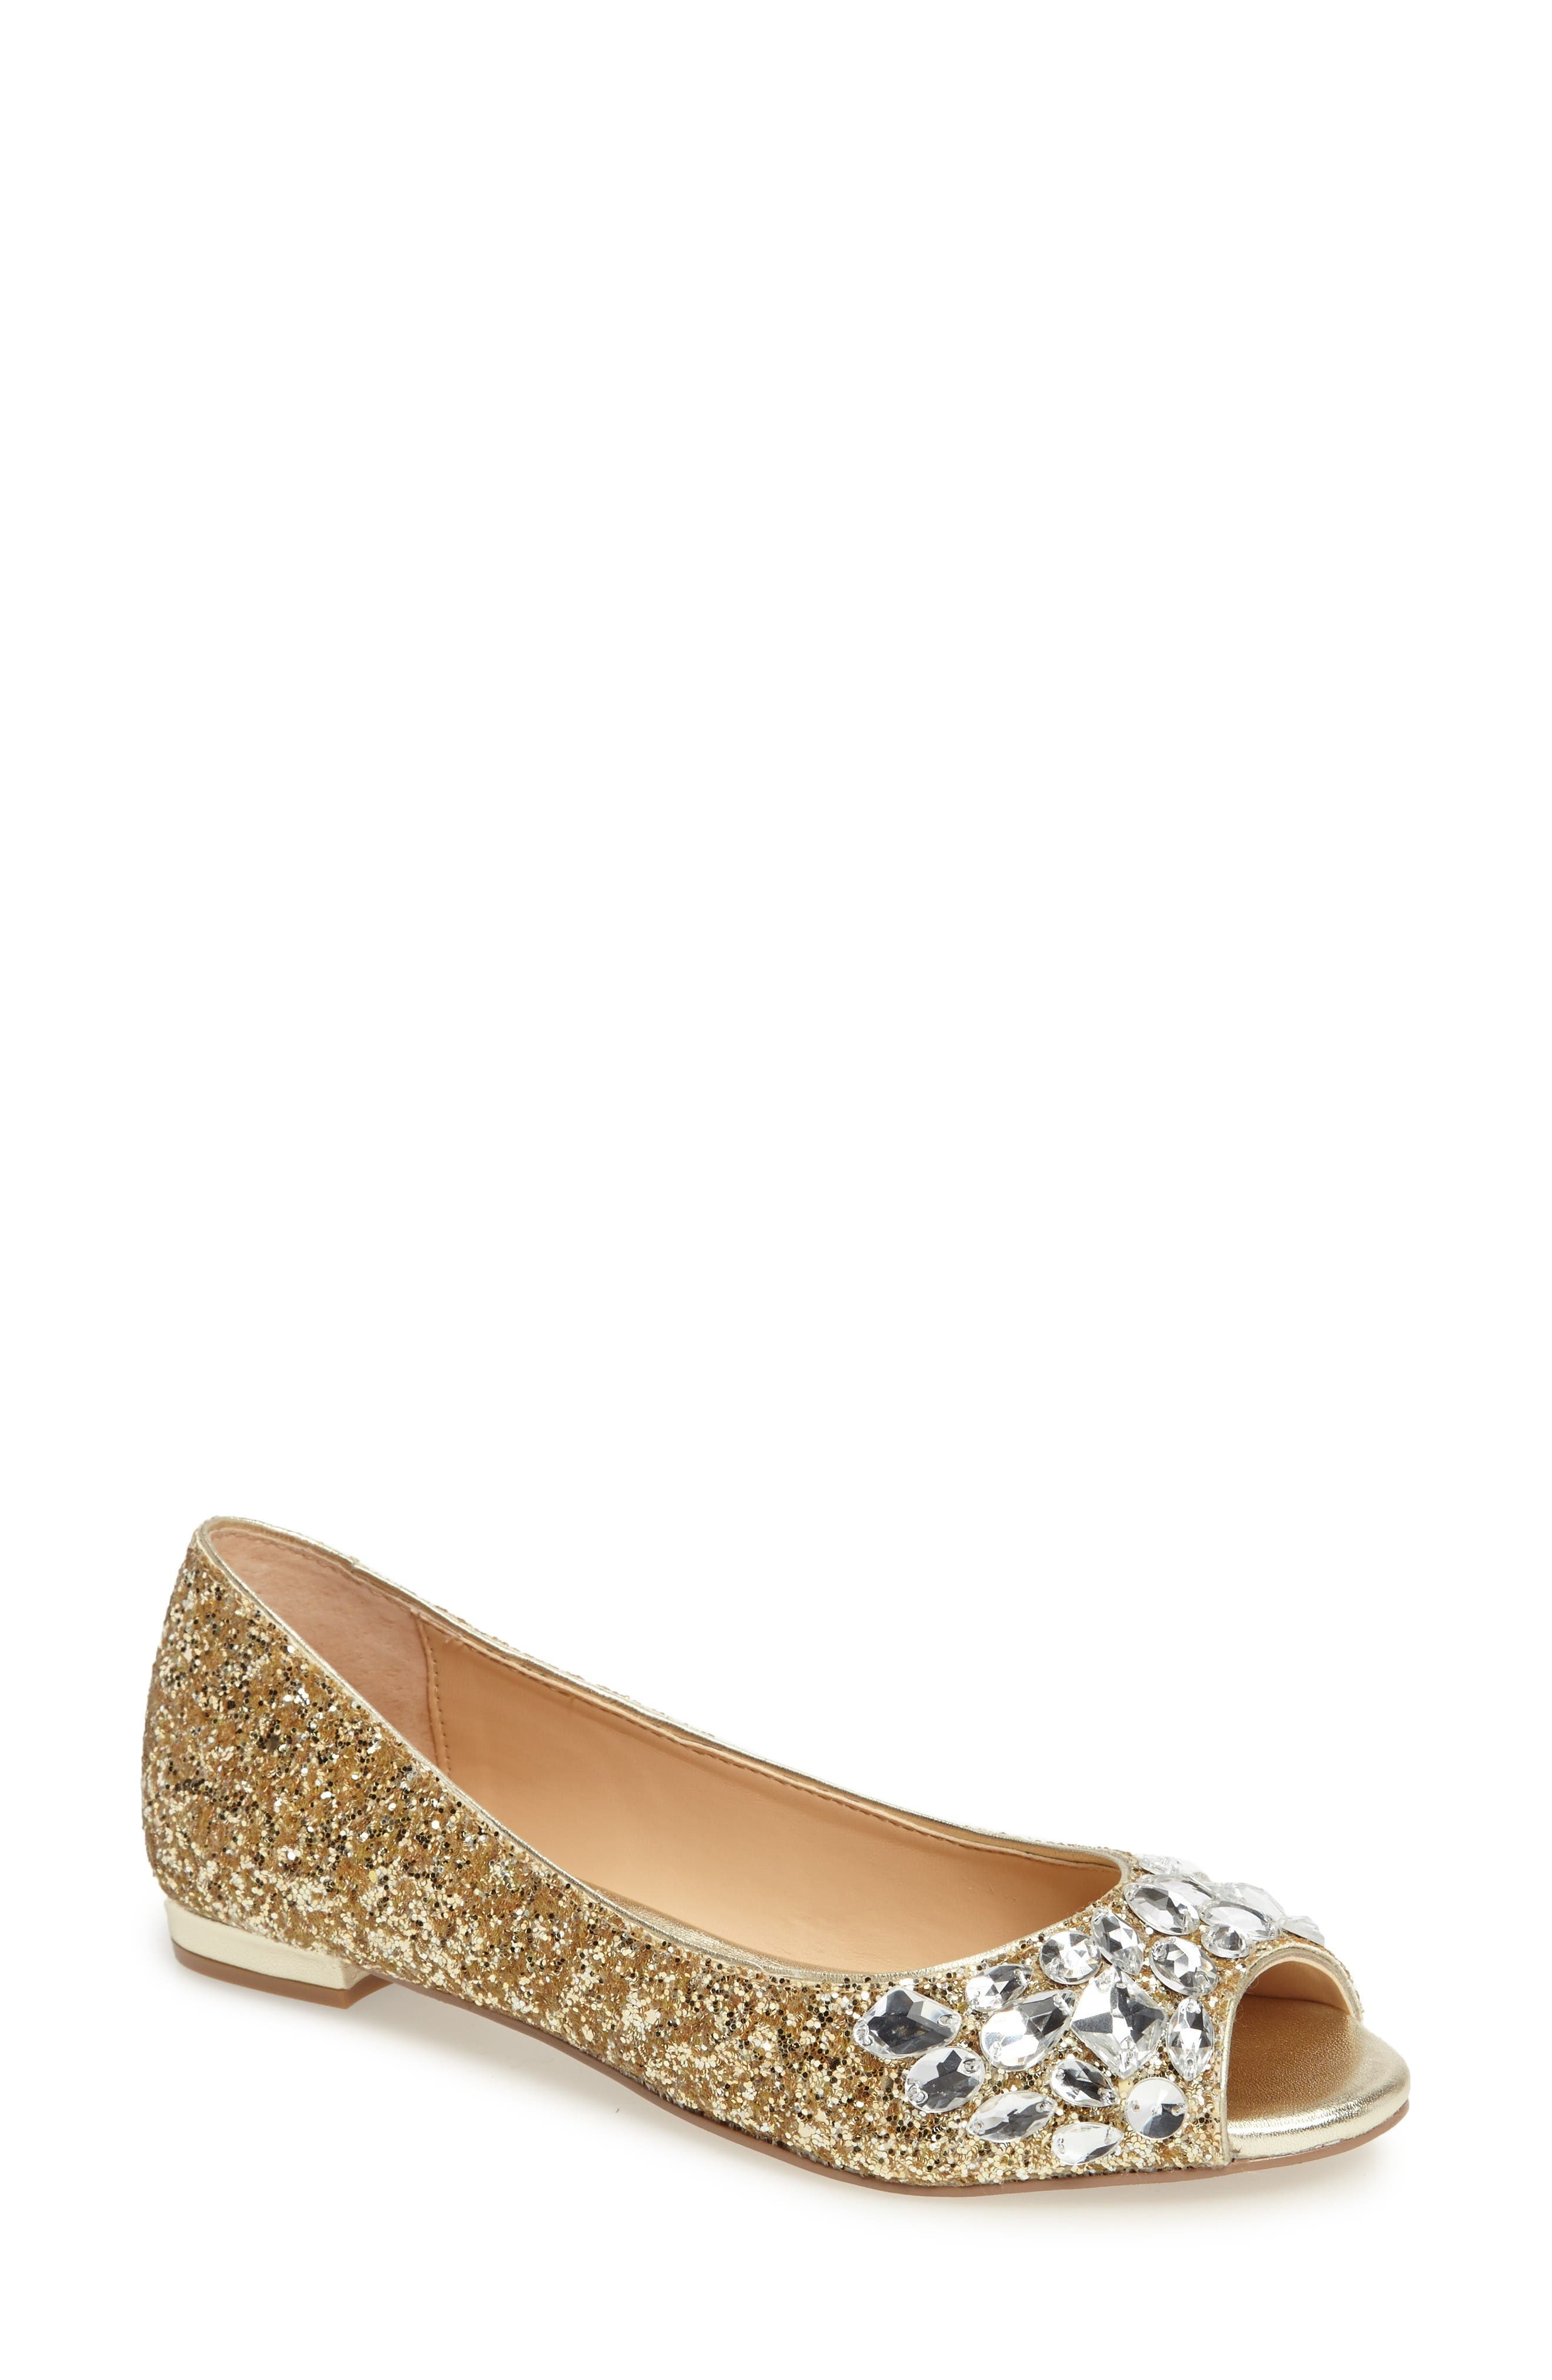 Alternate Image 1 Selected - Jewel Badgley Mischka Claire Embellished Flat (Women)